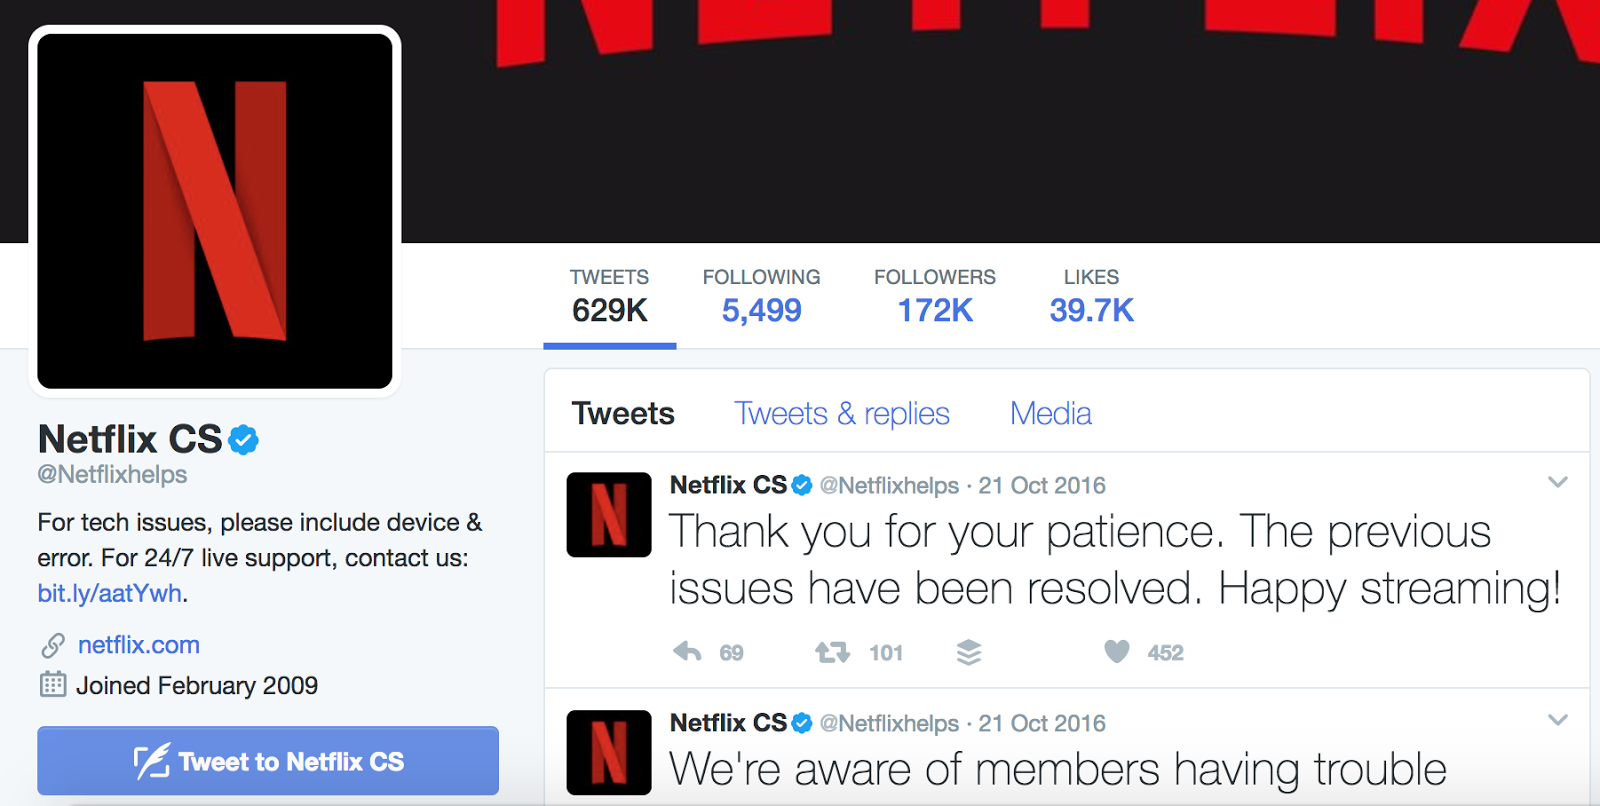 Netflix practices proactive communication